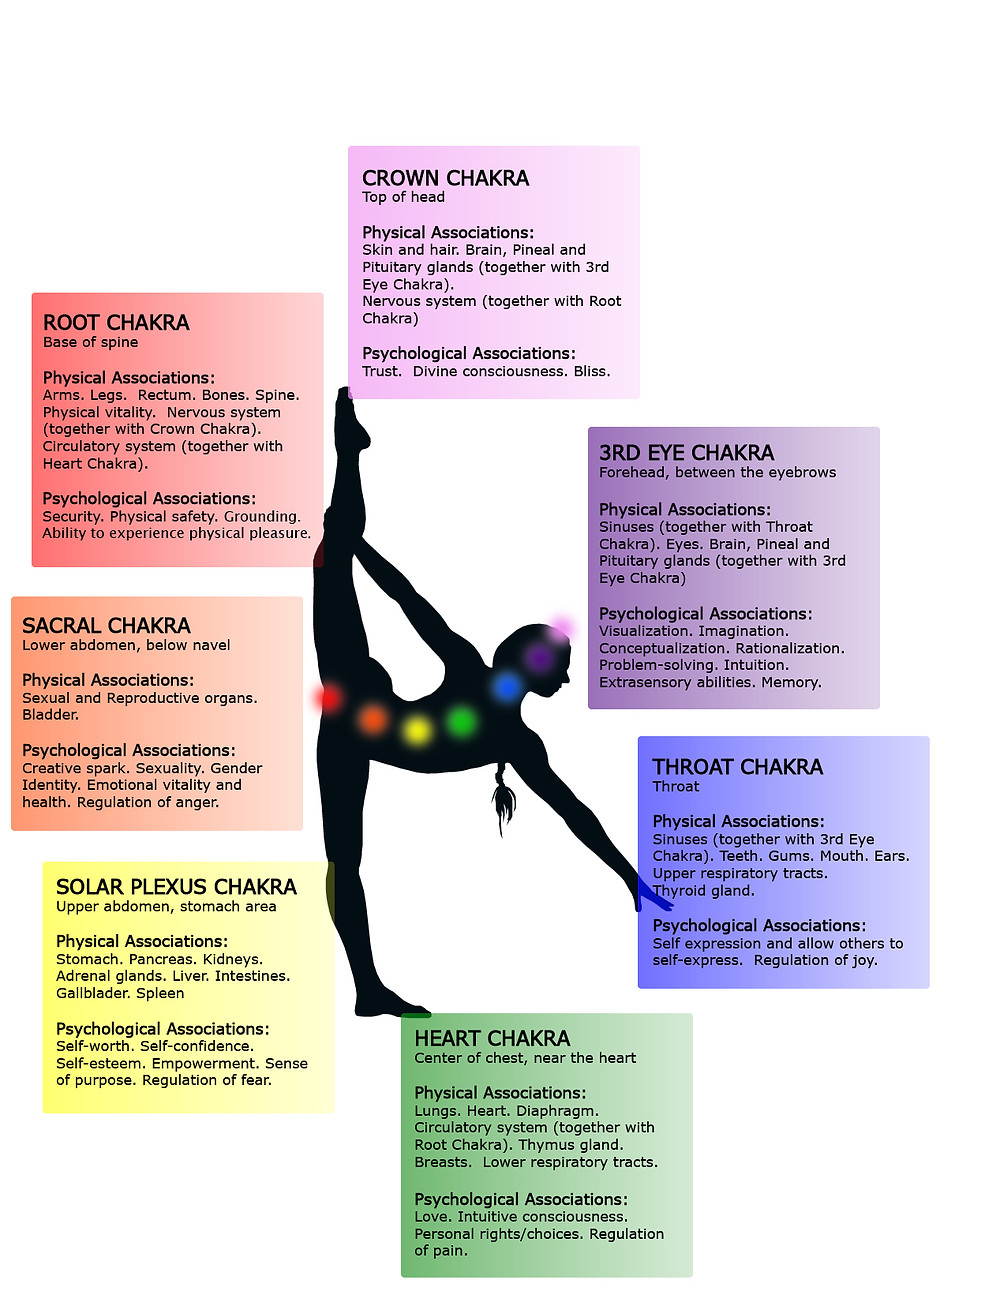 Infographic: 7 Major Chakras - physical and psychological associations